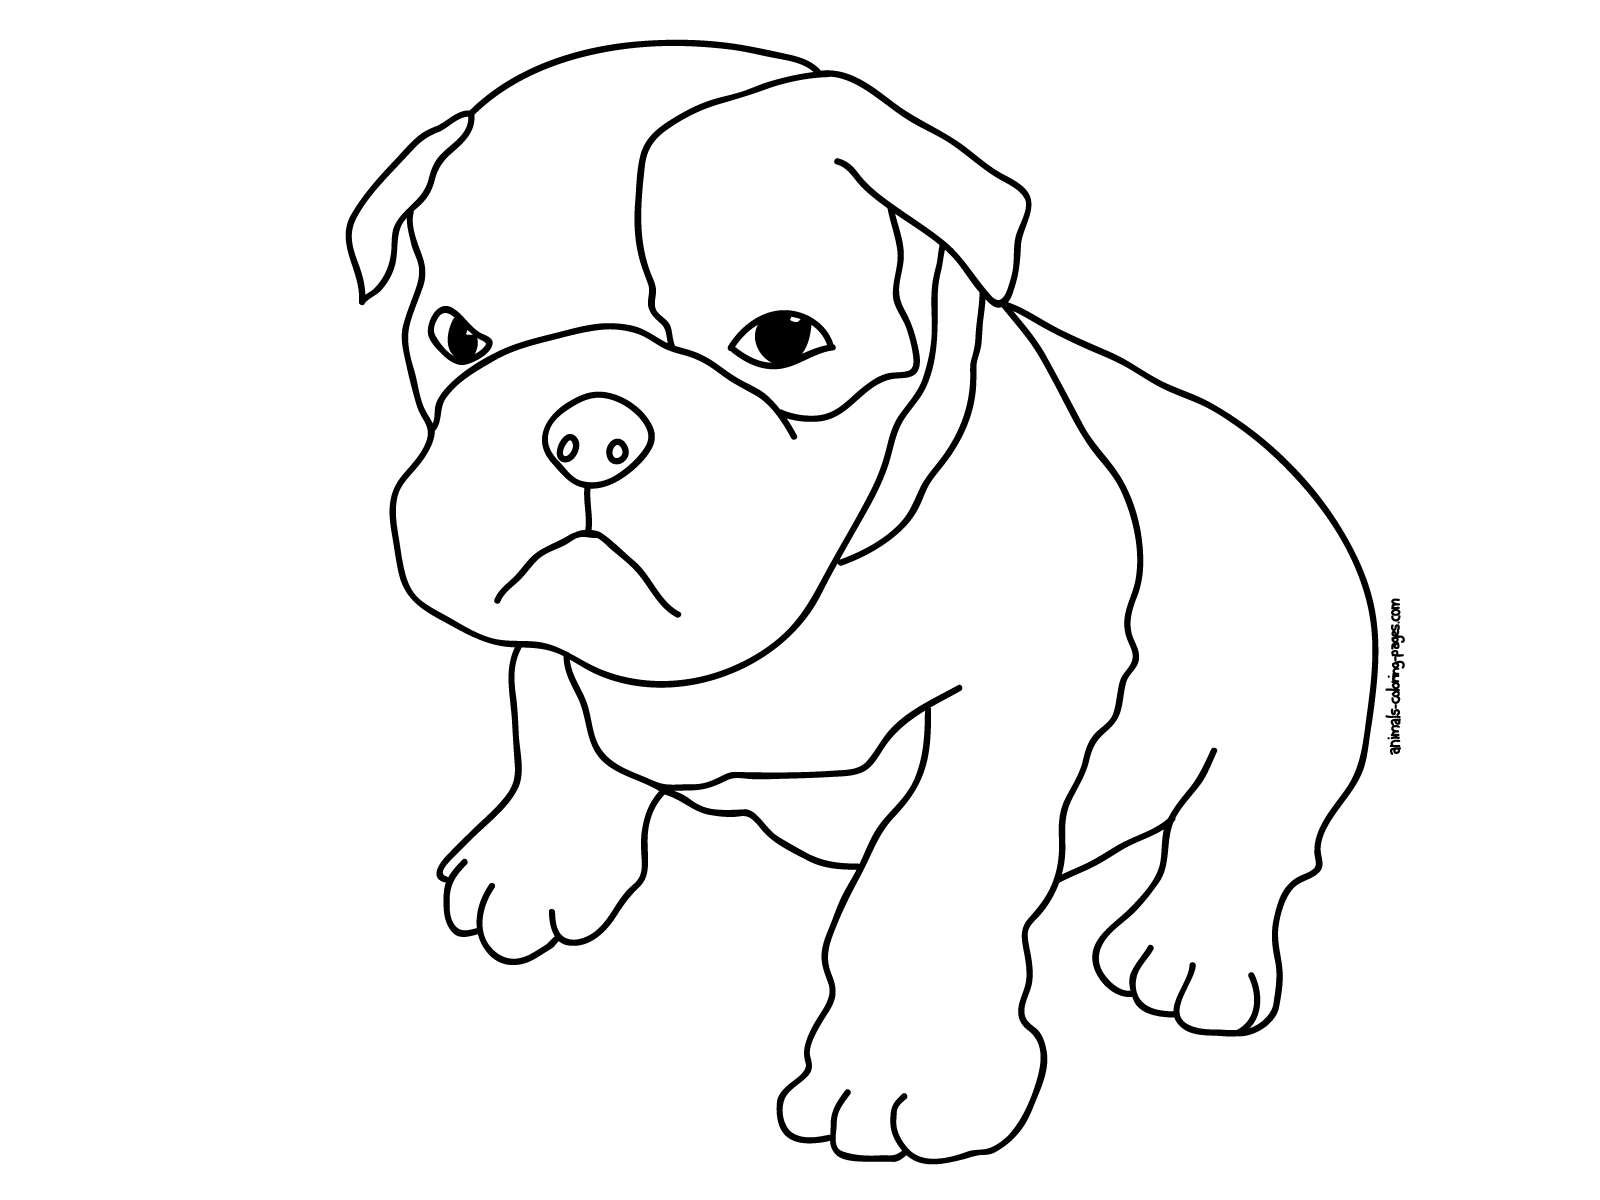 Dog Party Dog Coloring Page Puppy Coloring Pages Dog Coloring Book